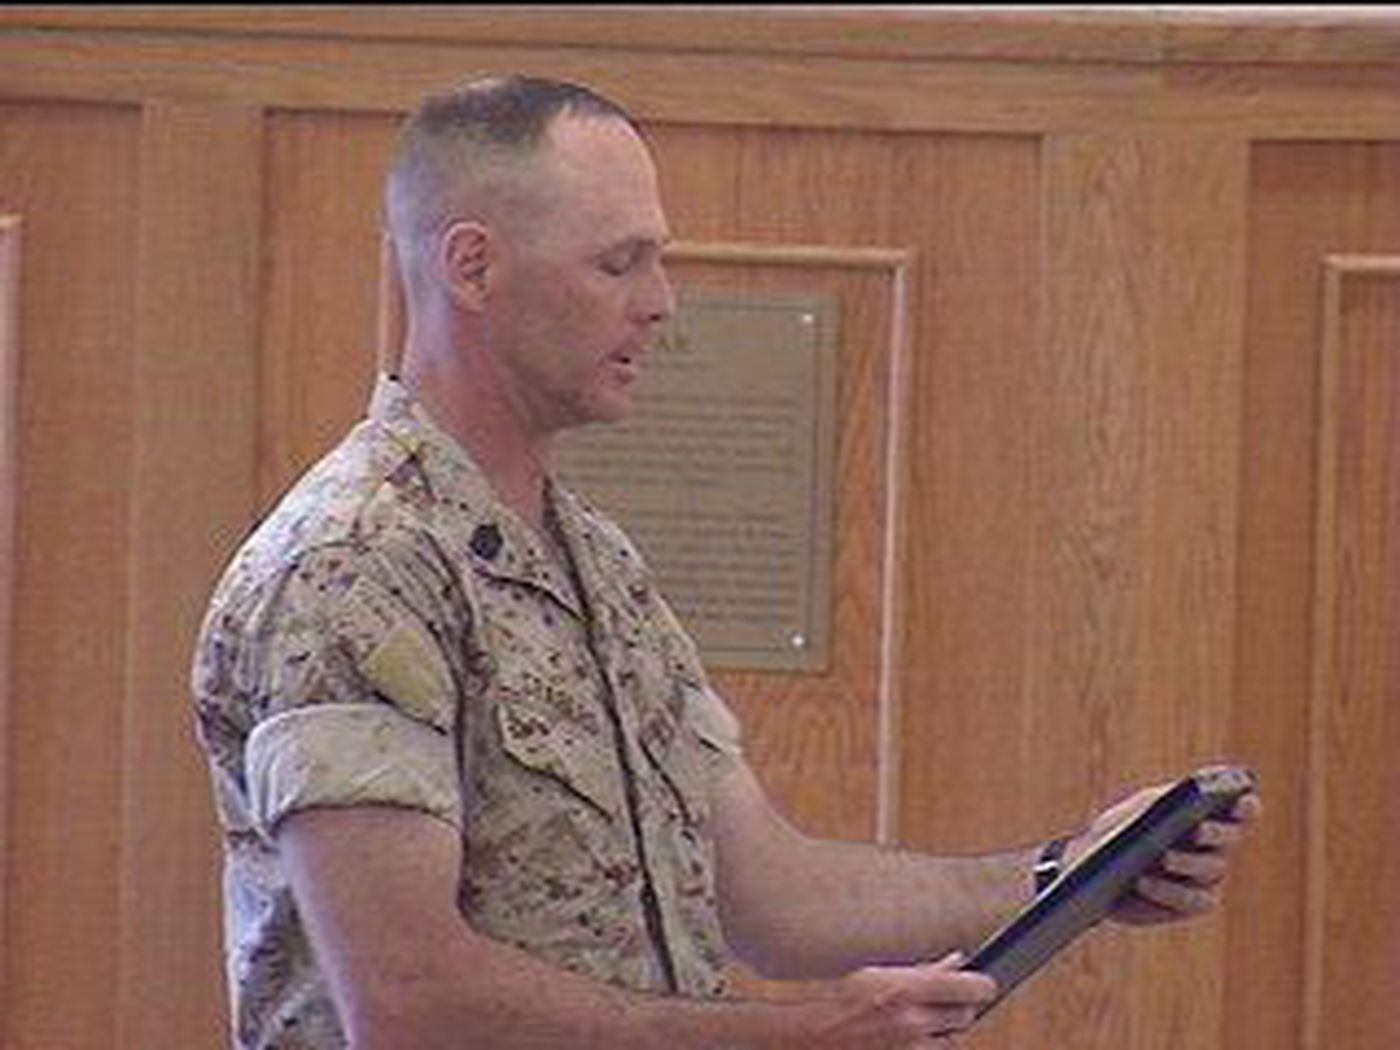 Hawaii Based Marines Mourn 11 Soldiers Killed In Iraq